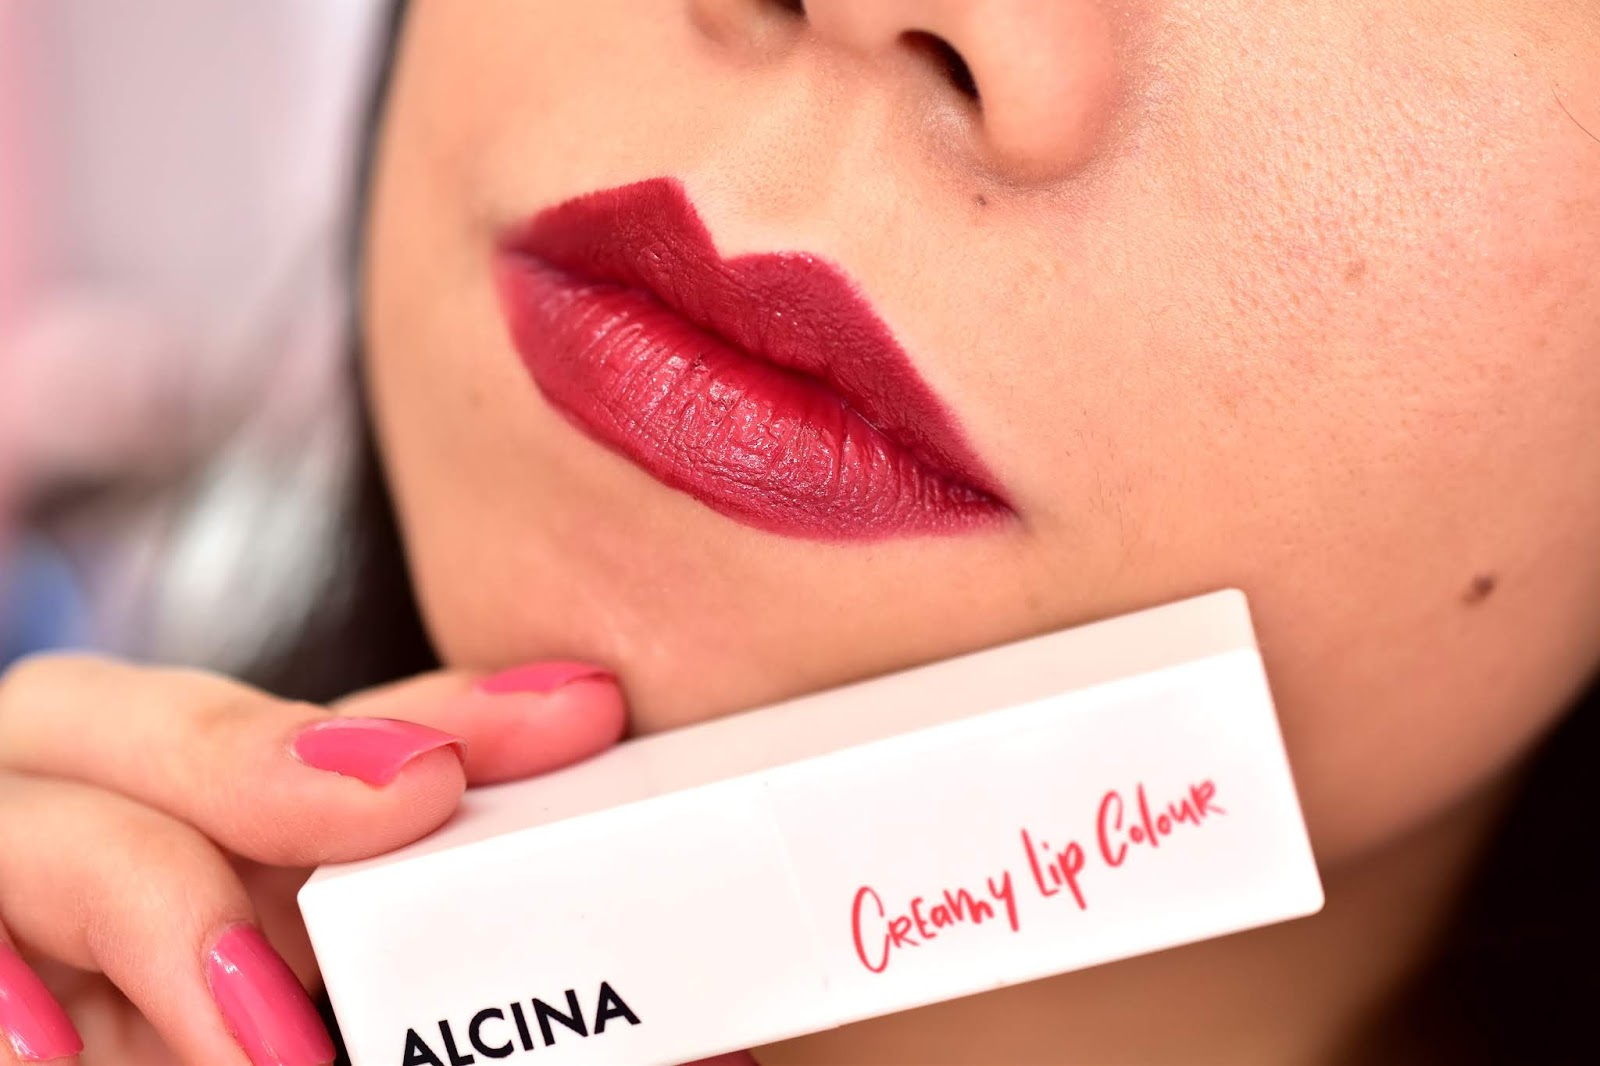 Alcina Creamy Lip Colour Cherry